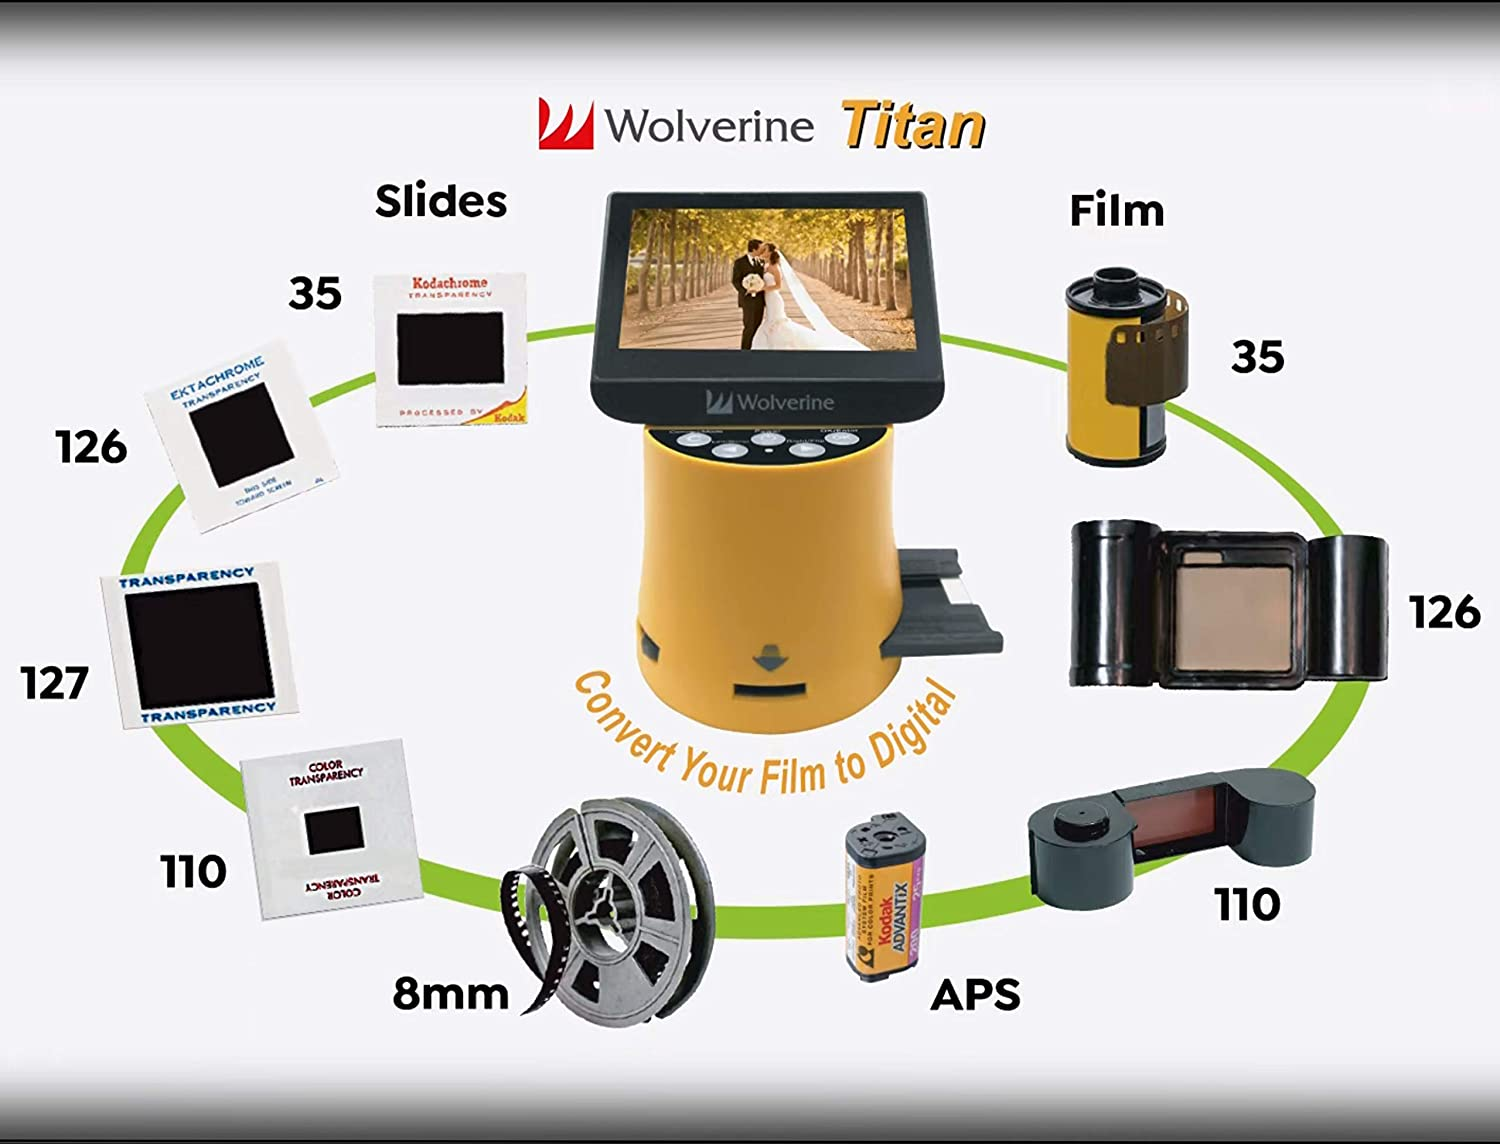 "Titan 8-in-1 20MP High Resolution Film to Digital Converter with 4.3"" Screen and HDMI Output, Worldwide Voltage 110V/240V AC Adapter Plus (3) Wolverine Slide Trays (Black) Bundle"